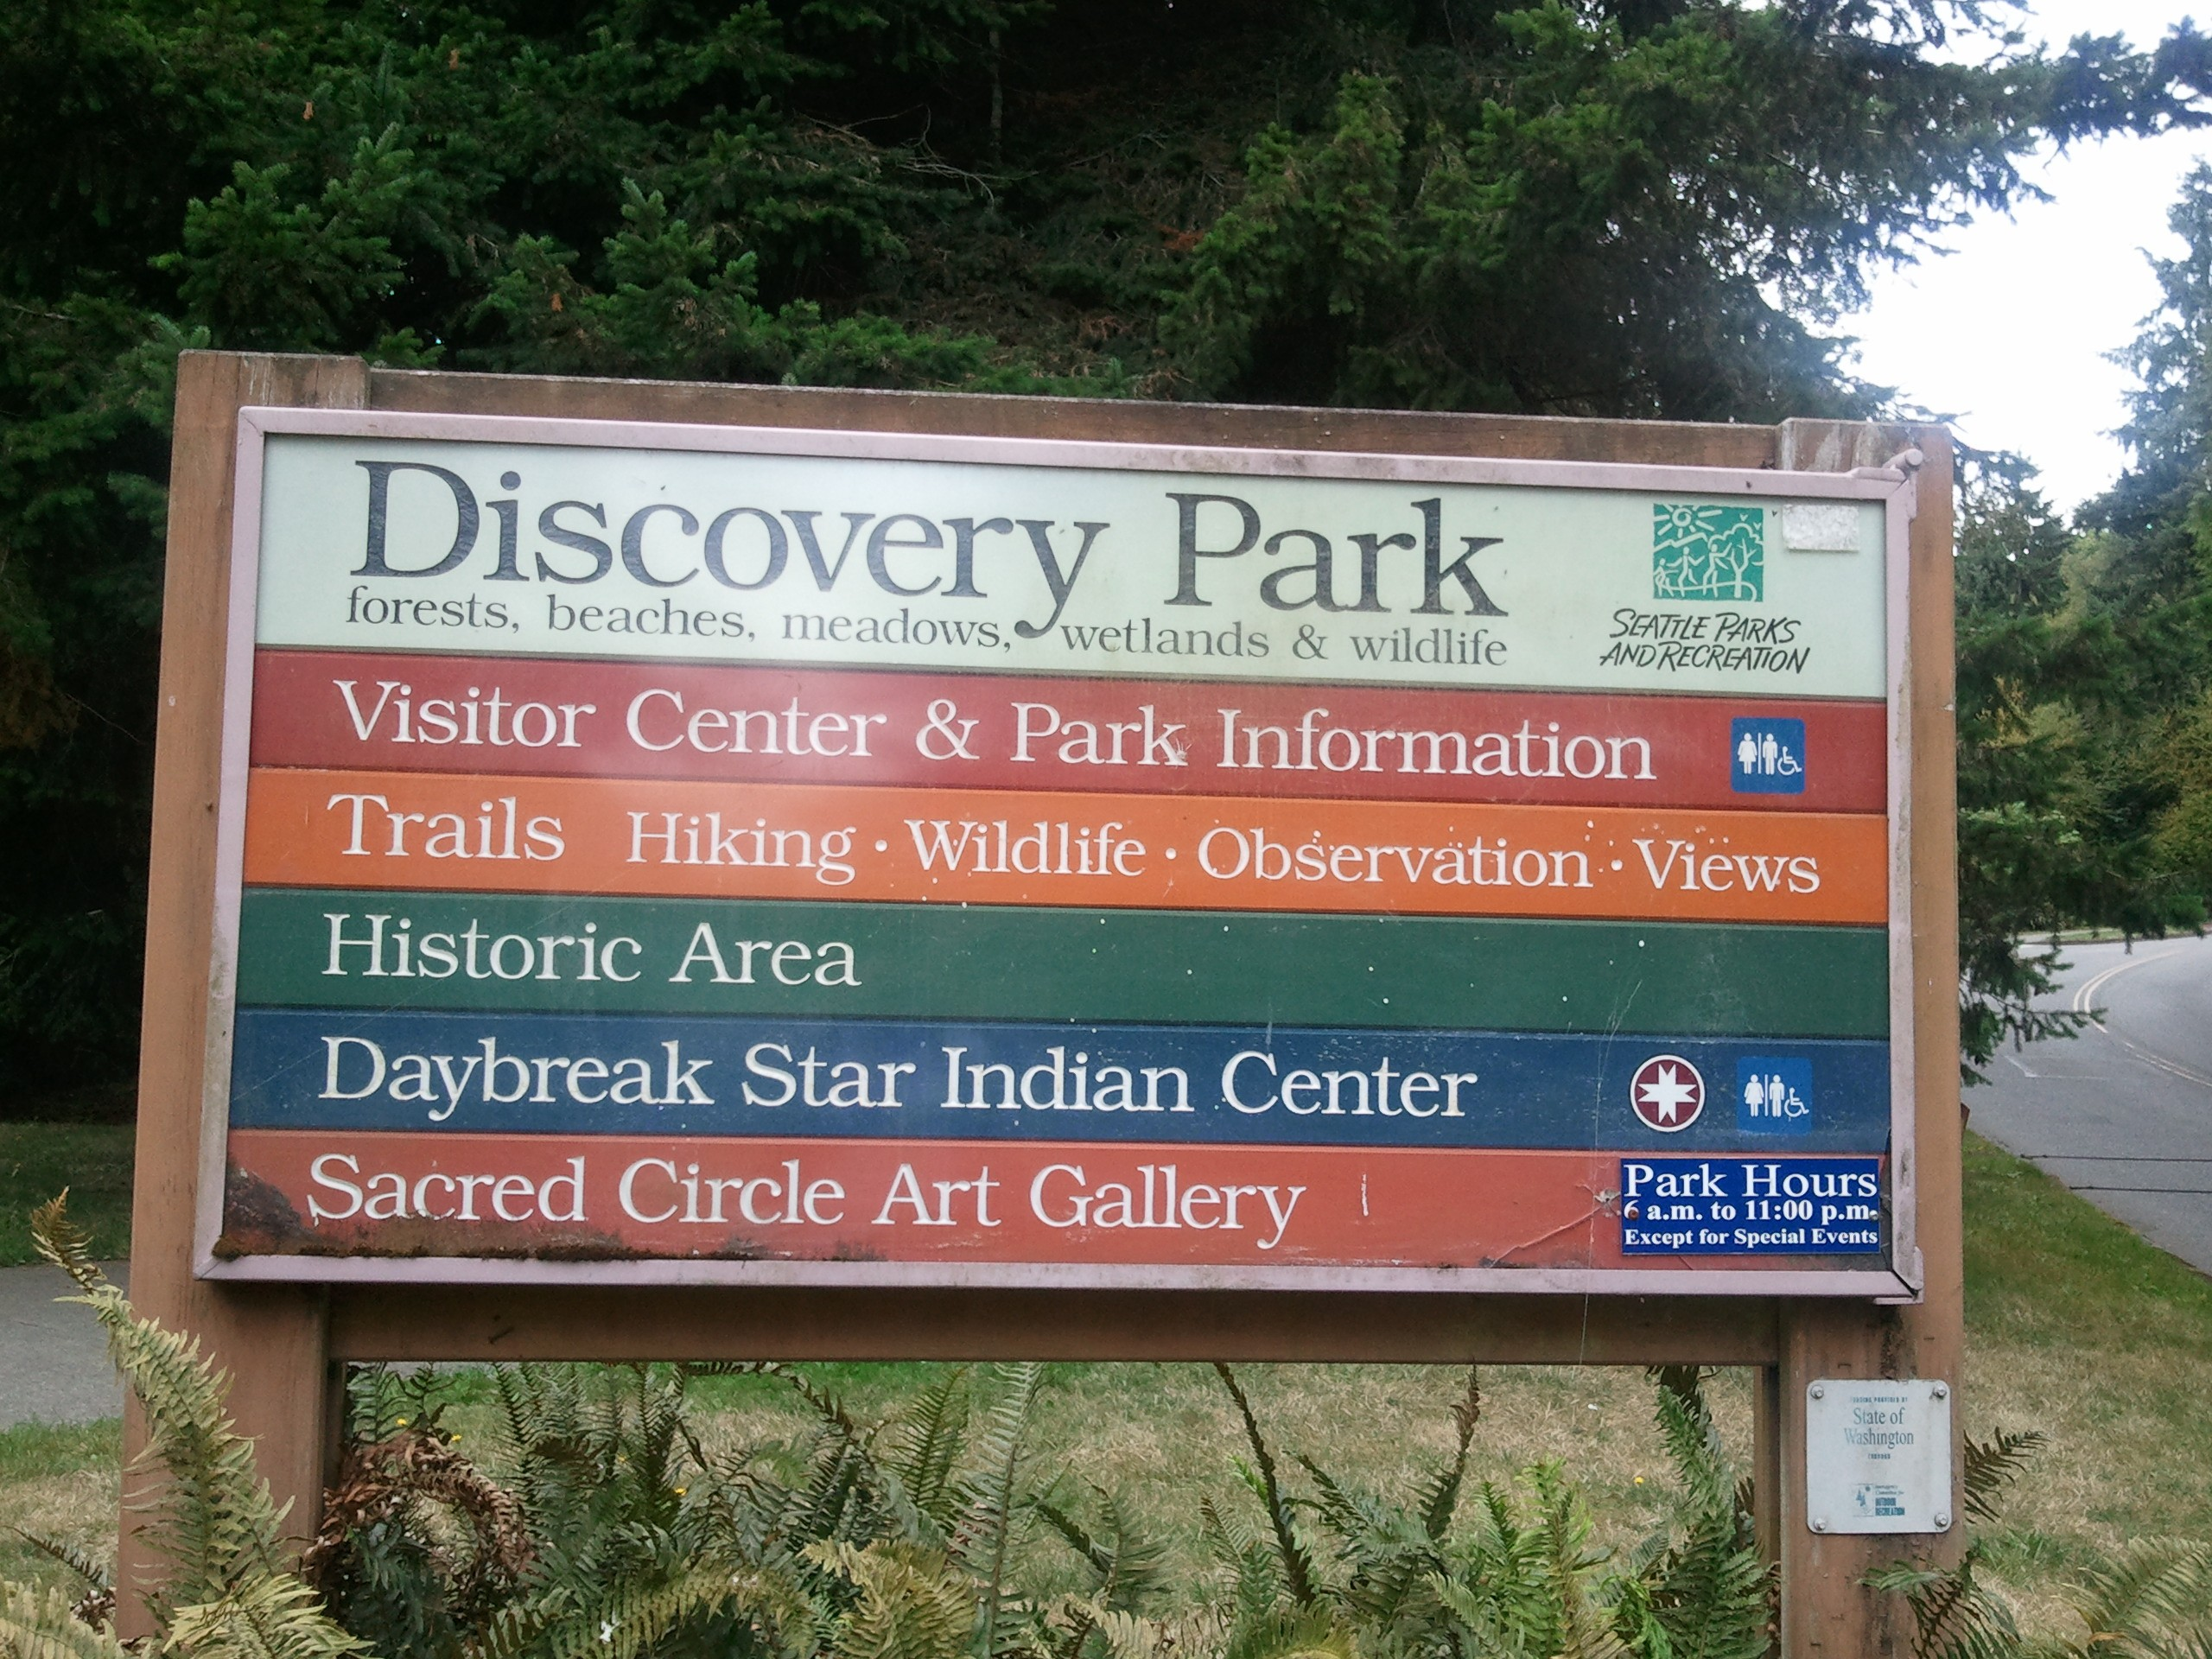 Discovery Park